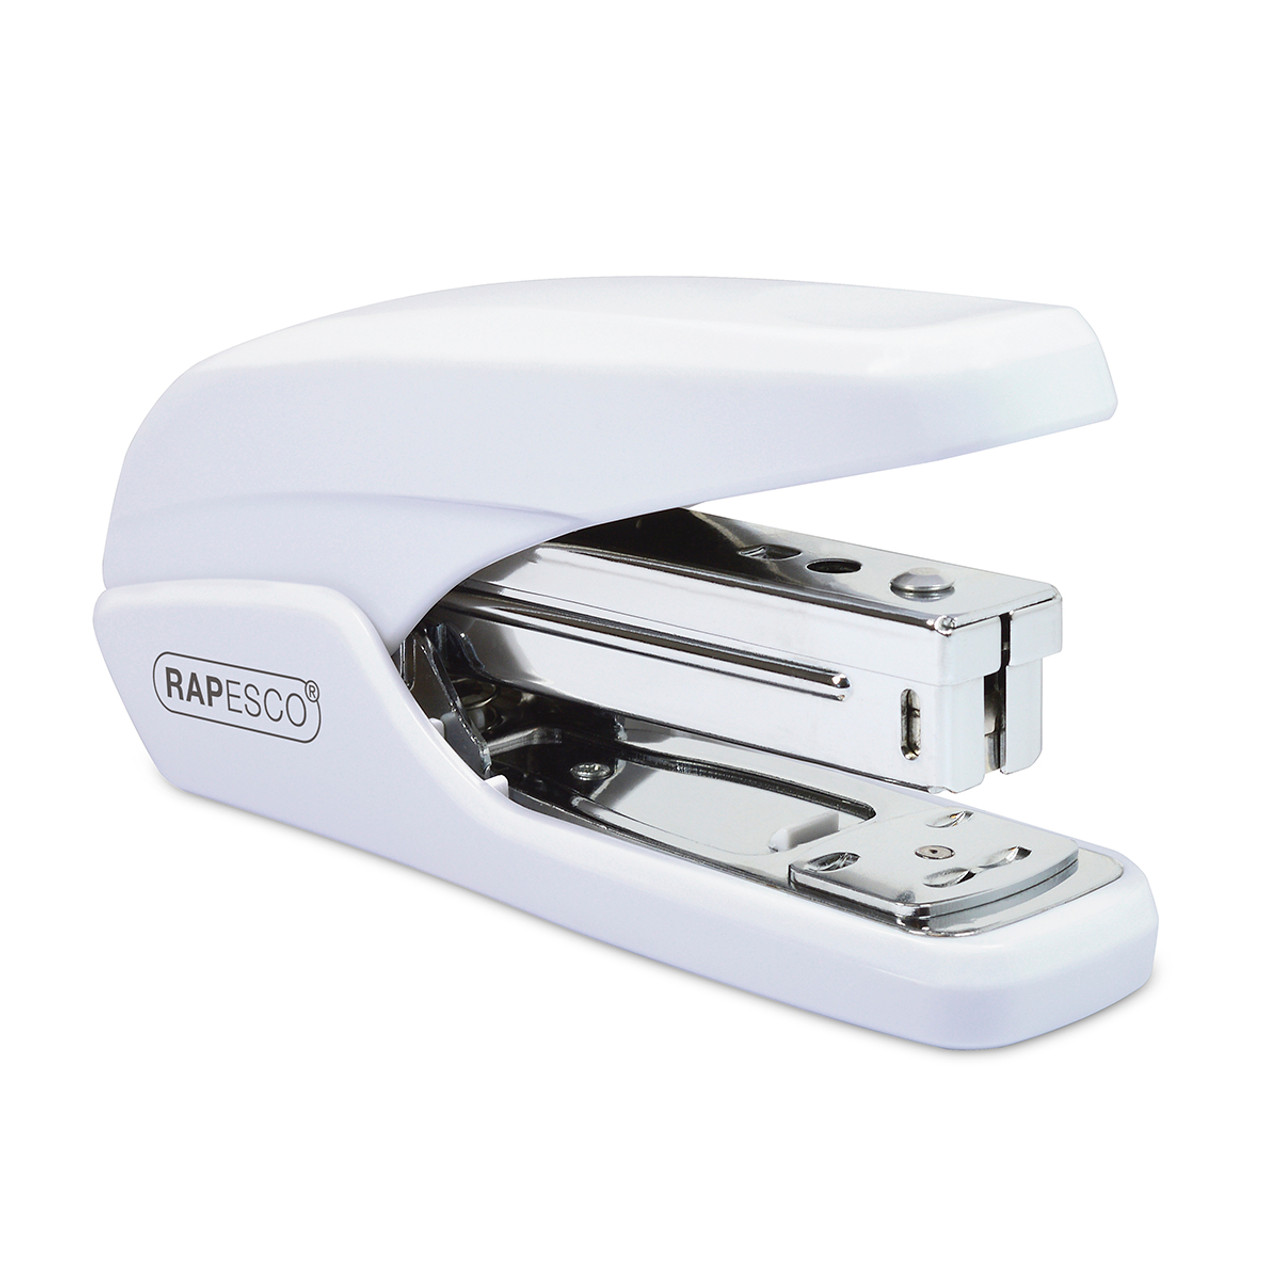 Rapesco X5-25ps Less Effort Stapler (White)